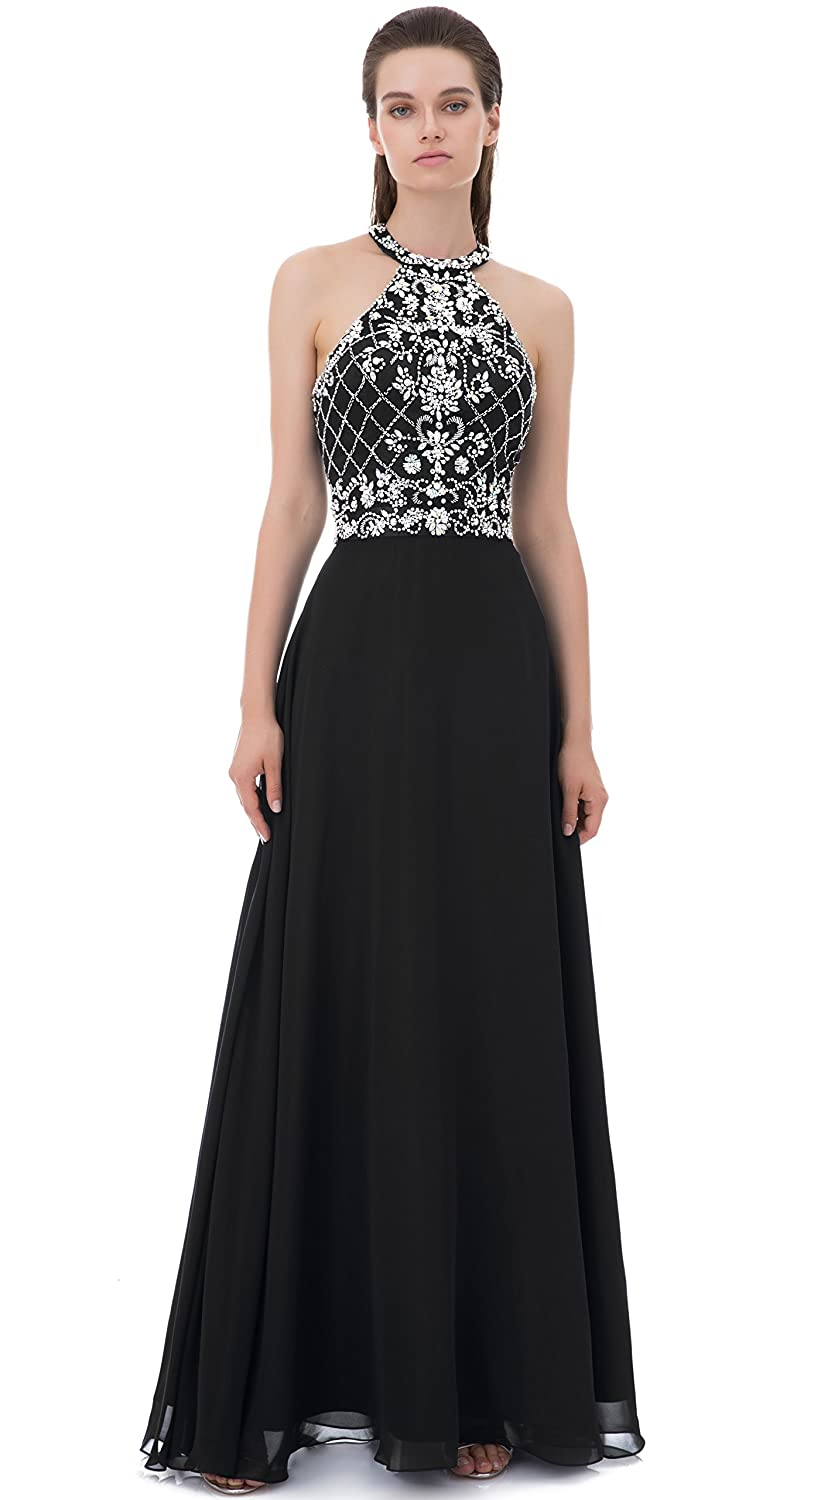 4c00d163a858 WDING Long Prom Dresses Halter Backless Heavy Beaded Rhinestone Evening  Dresses at Amazon Women's Clothing store: